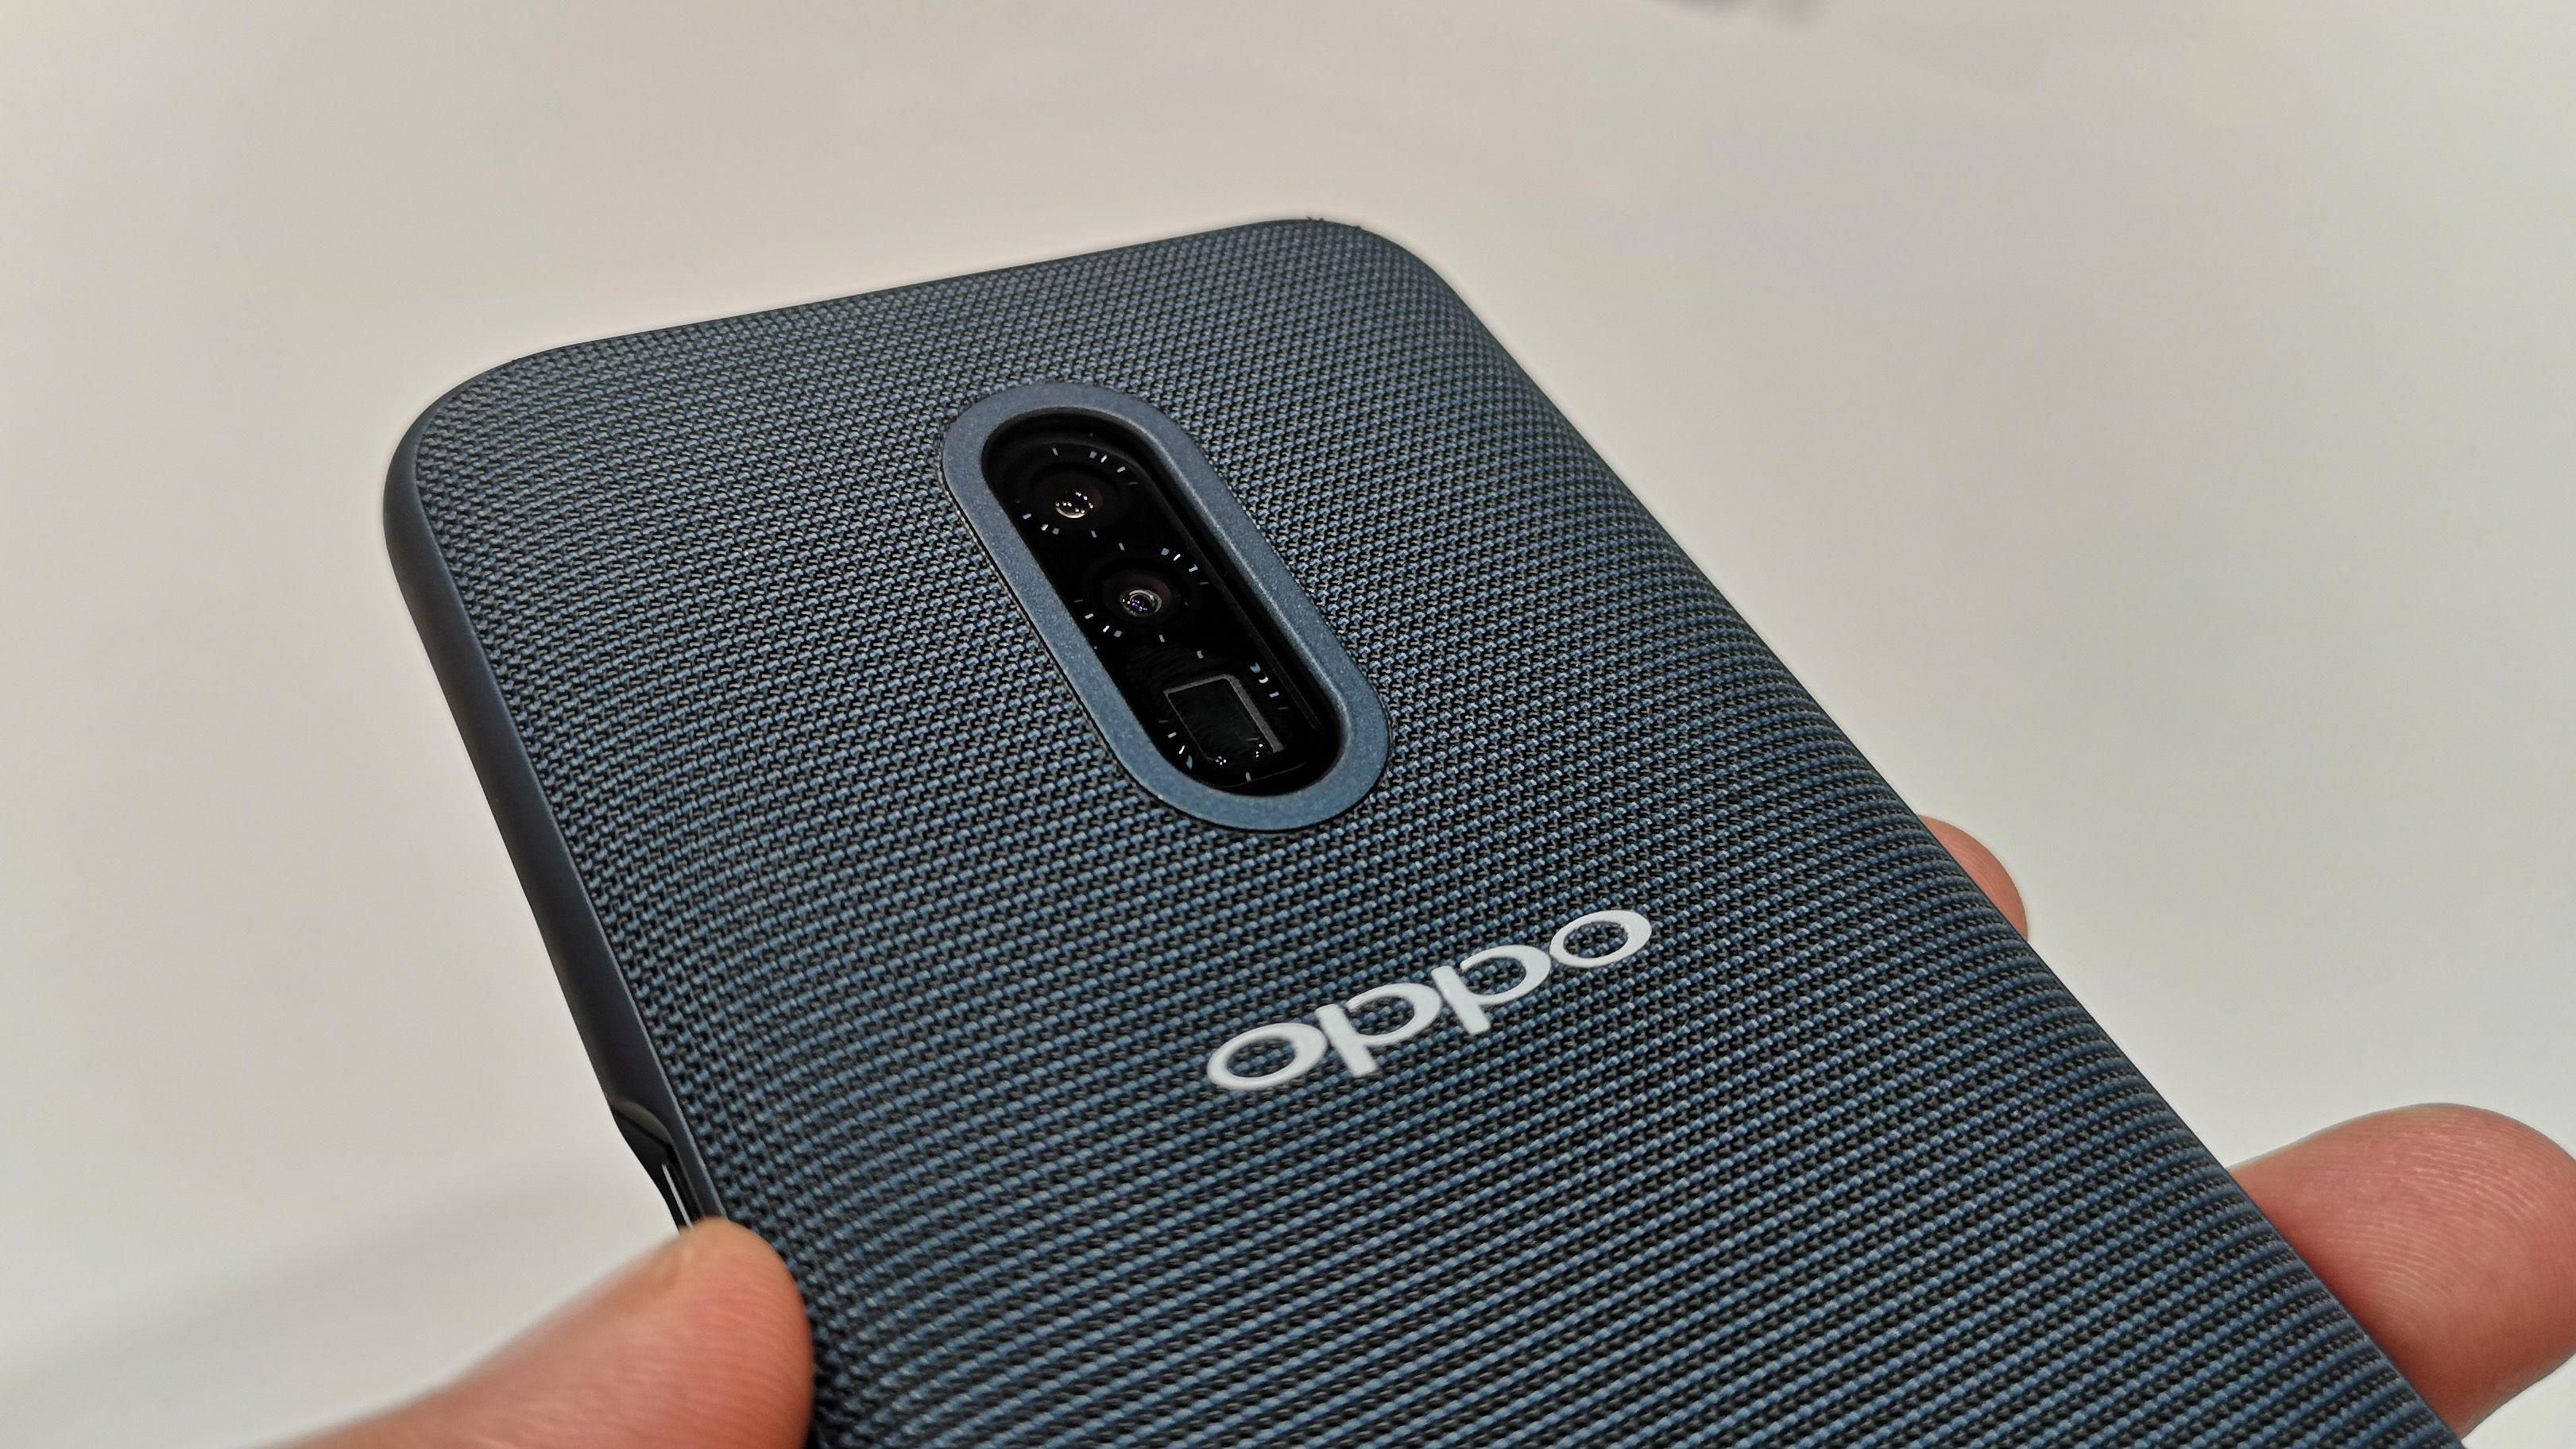 Oppos New 10x Lossless Zoom Technology Lets You Wave Goodbye To Blurry Photos Smartphone Accessories Mobile World Congress Best Smartphone